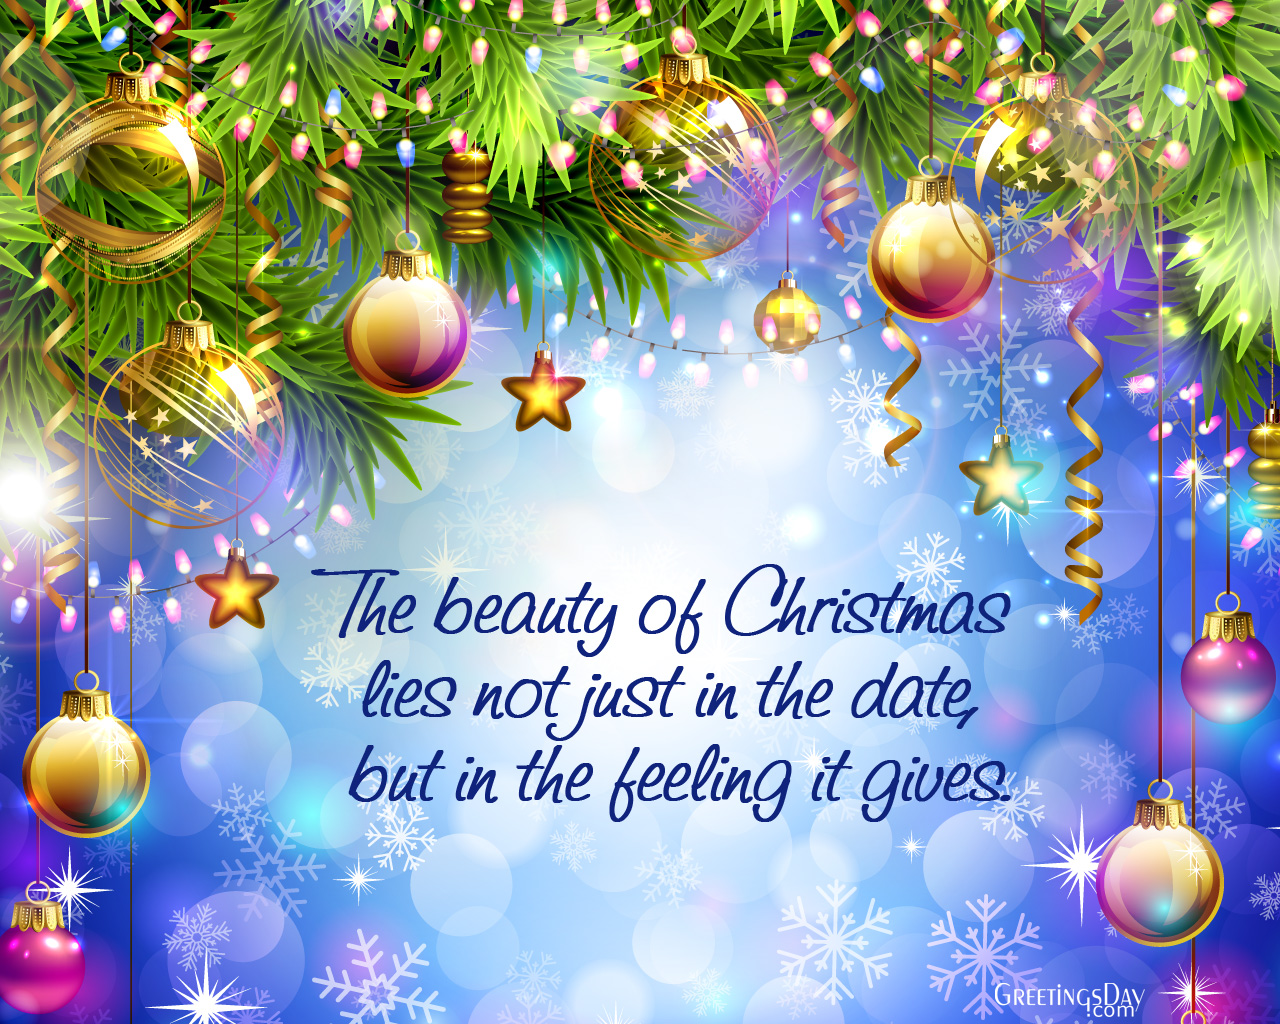 Christmas quotes sayings quote pictures about christmas 15 inspirational quotes and sayings about christmas m4hsunfo